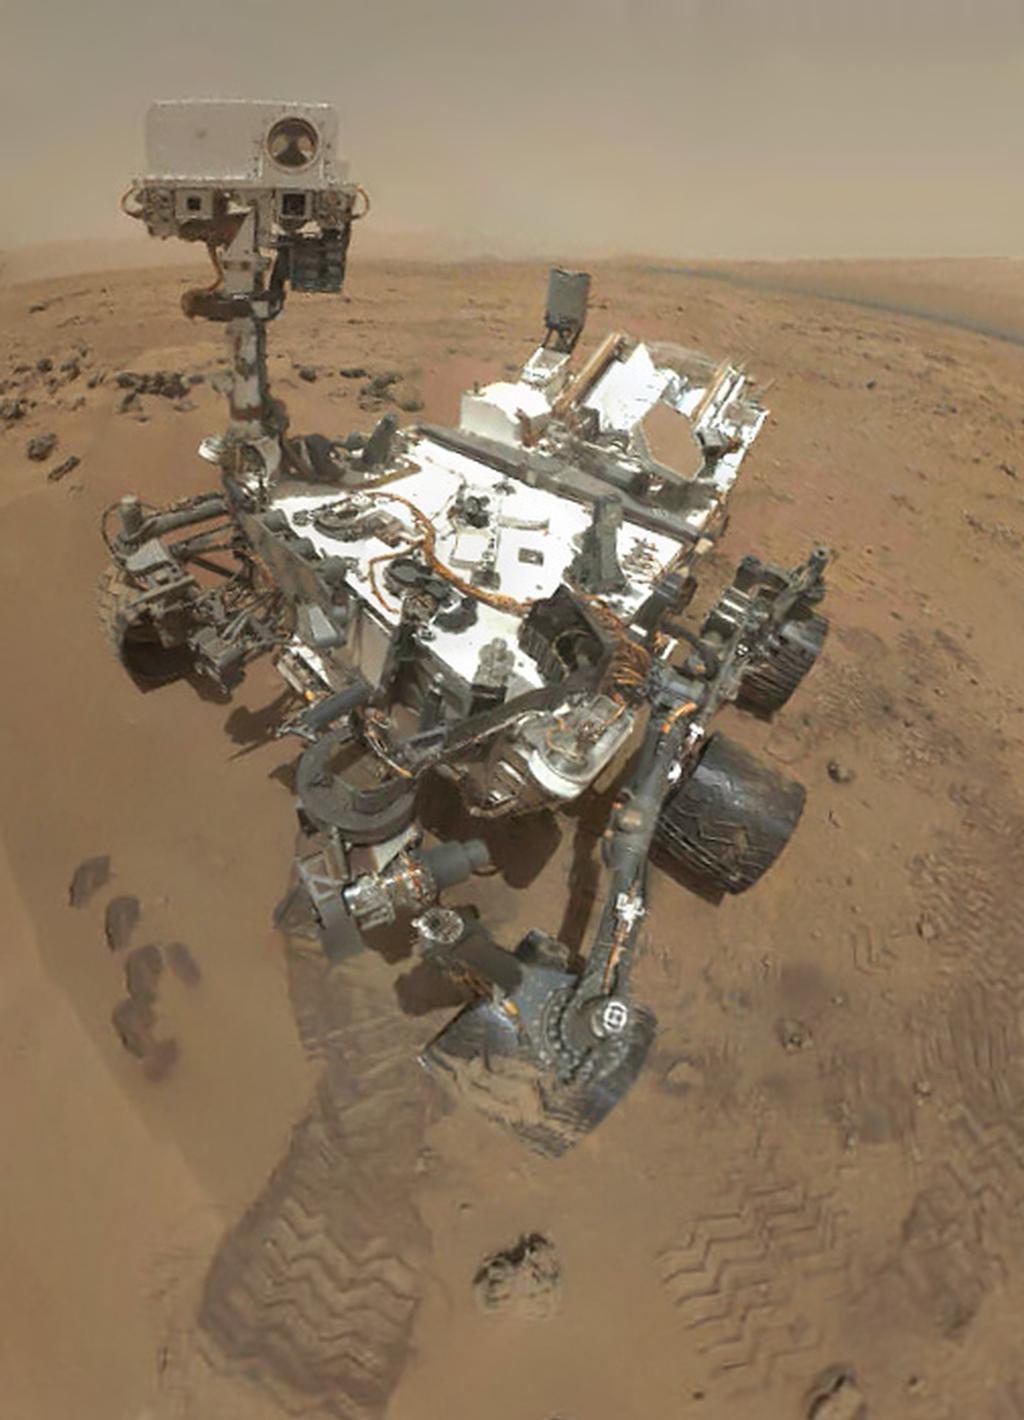 Self-portrait of NASA's Curiosity Mars rover uses thumbnail versions of MAHLI component images to give an idea of what a sharper version will look like when the full-frame images are assembled.